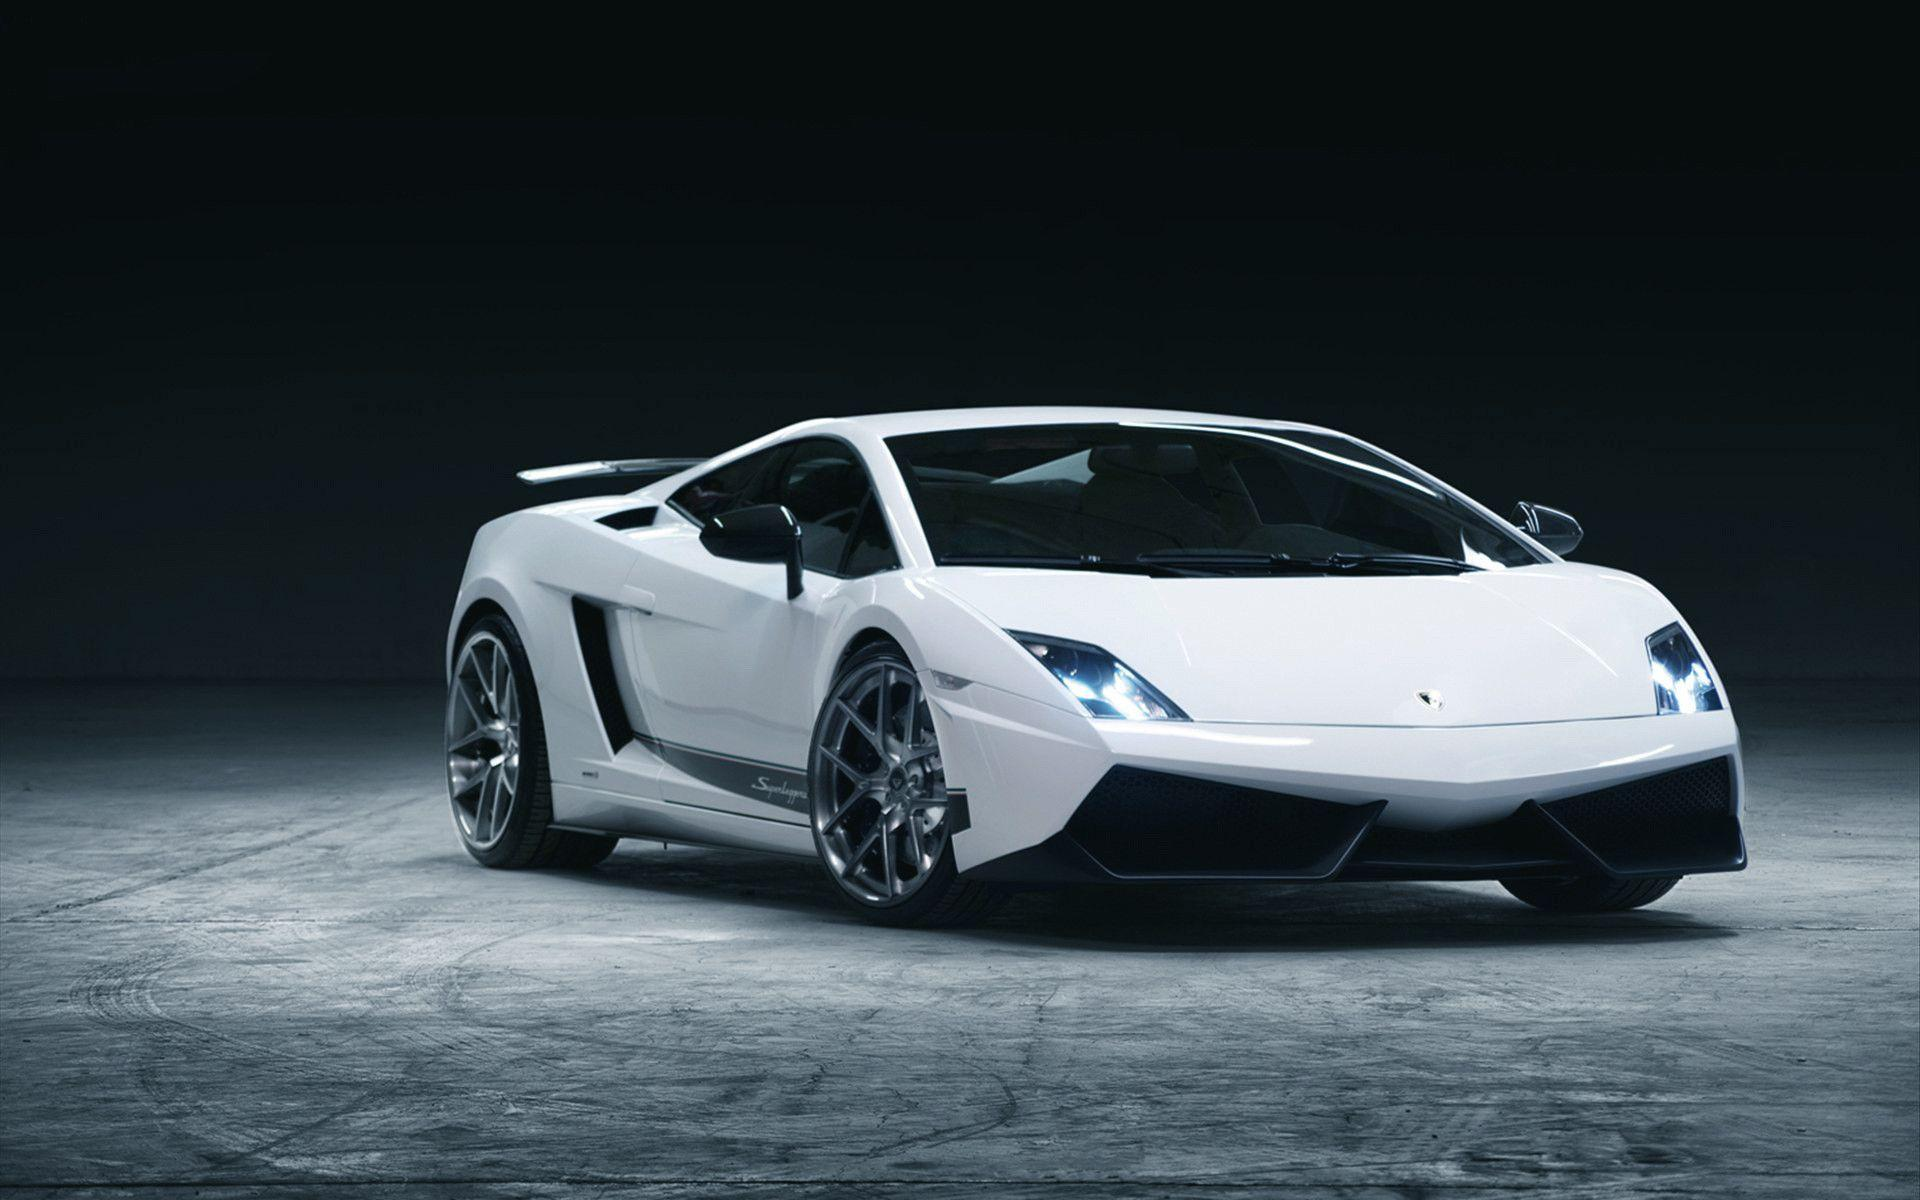 2012 vorsteiner lamborghini gallardo wallpapers hd wallpapers - Lamborghini Gallardo Wallpaper Blue